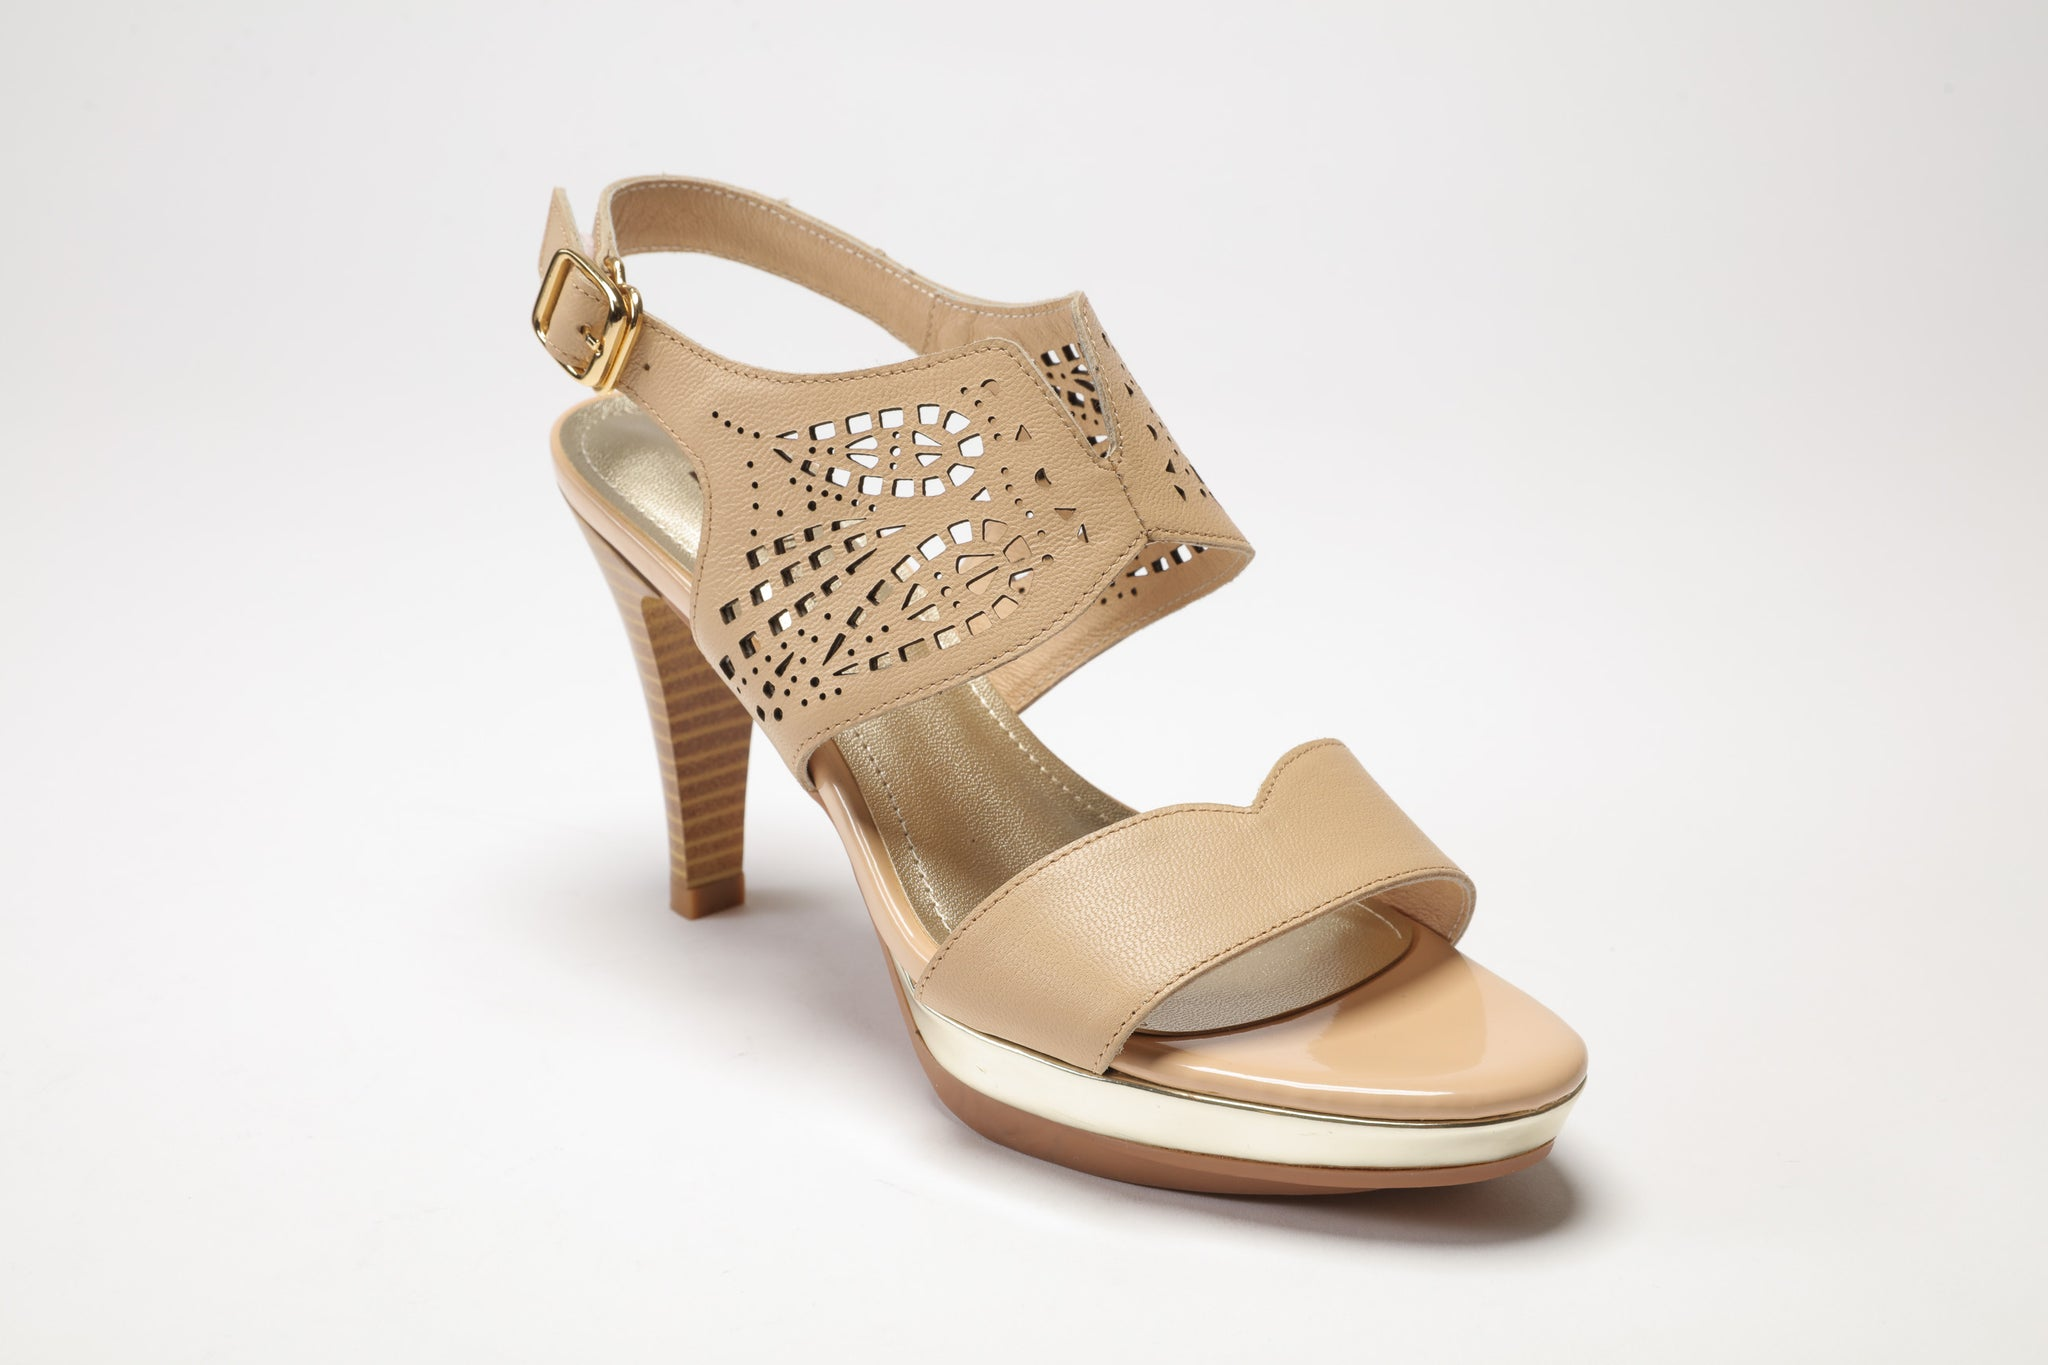 SS17001 Laser cut Leather Sandals in tan and black up to 40% off - Sam Star shoes